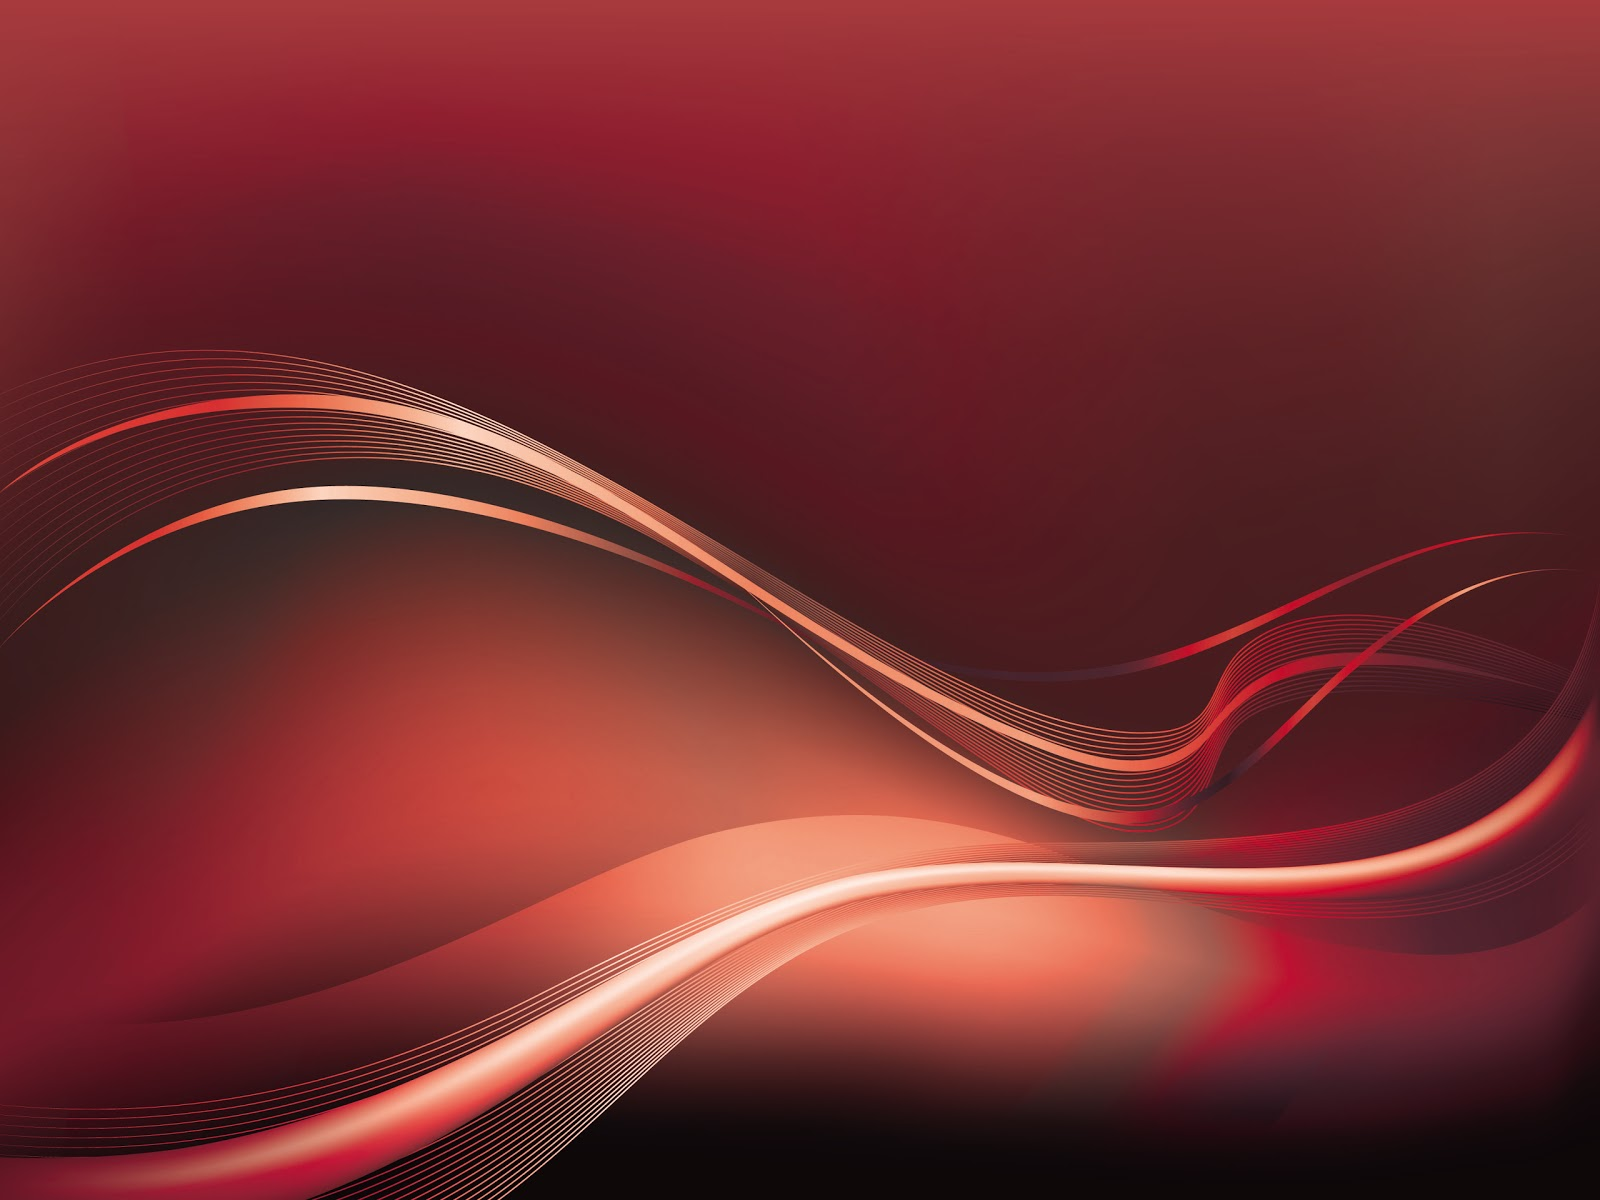 1600x1200 Red Waves And Lines Vector Background Hd